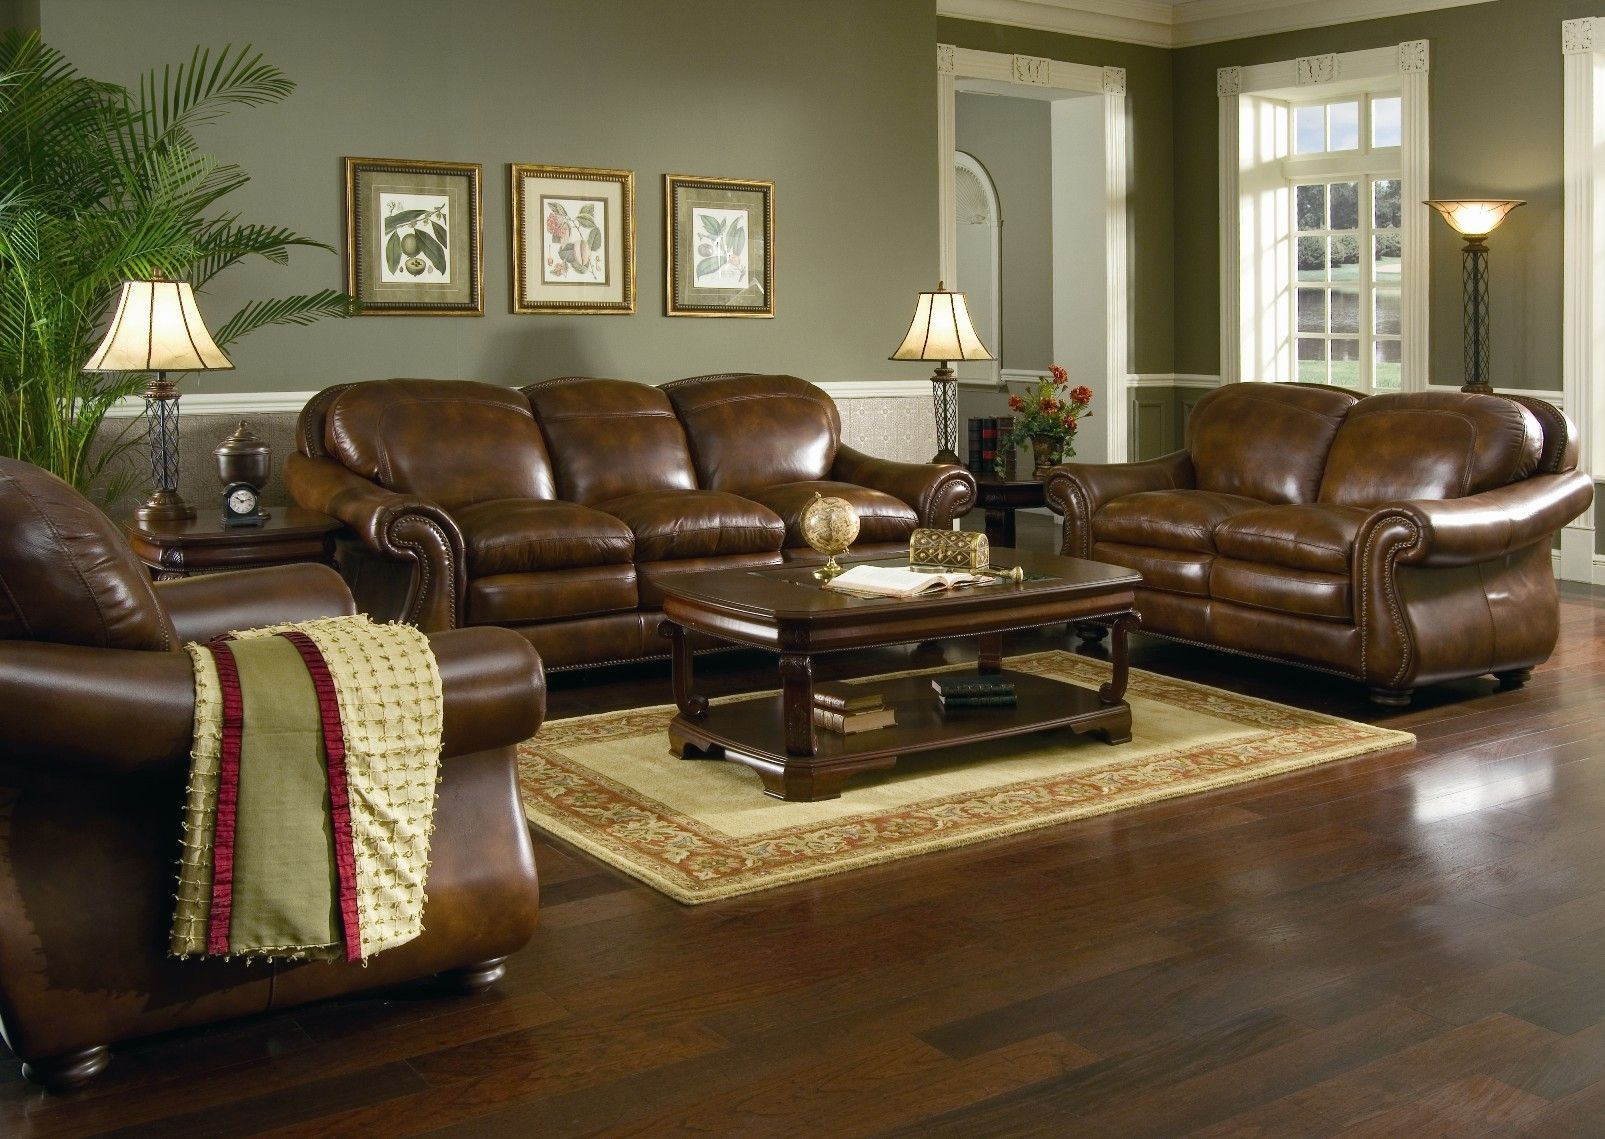 Luxurious Classic Living Room Ideas With Brown Leather Couch And Wooden Coffee T Leather Sofa Living Room Brown Living Room Decor Leather Living Room Furniture